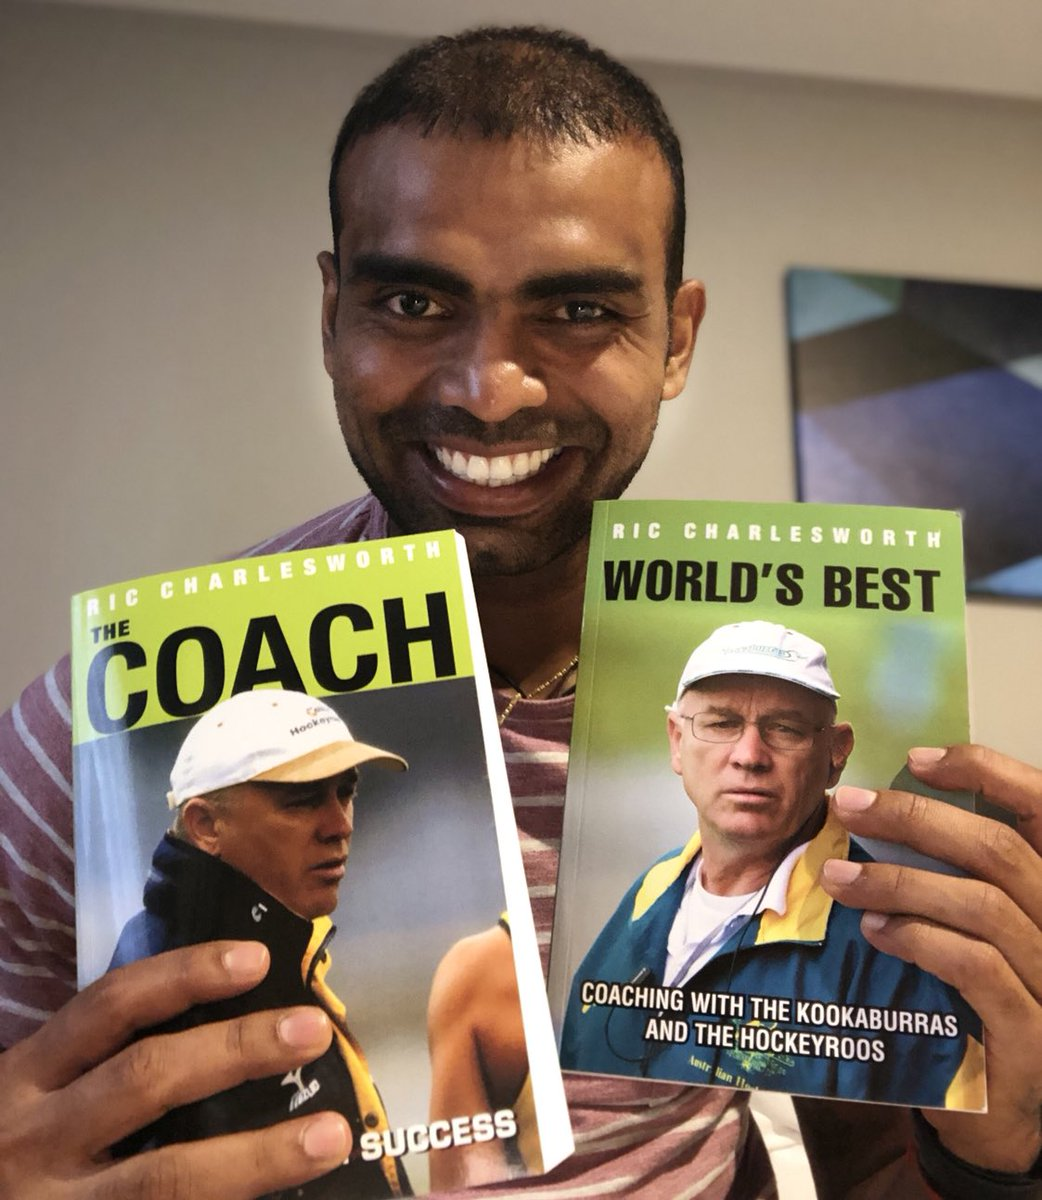 The wait is over ... received a copy from the legendary coach , @riccharlesworth thank  you very much Coach#riccharlesworth , It's going to be a diamond in my collection .... @iyengarshrikant #coach #worldsbest #australia #hockey #family #perth   #hockeylife